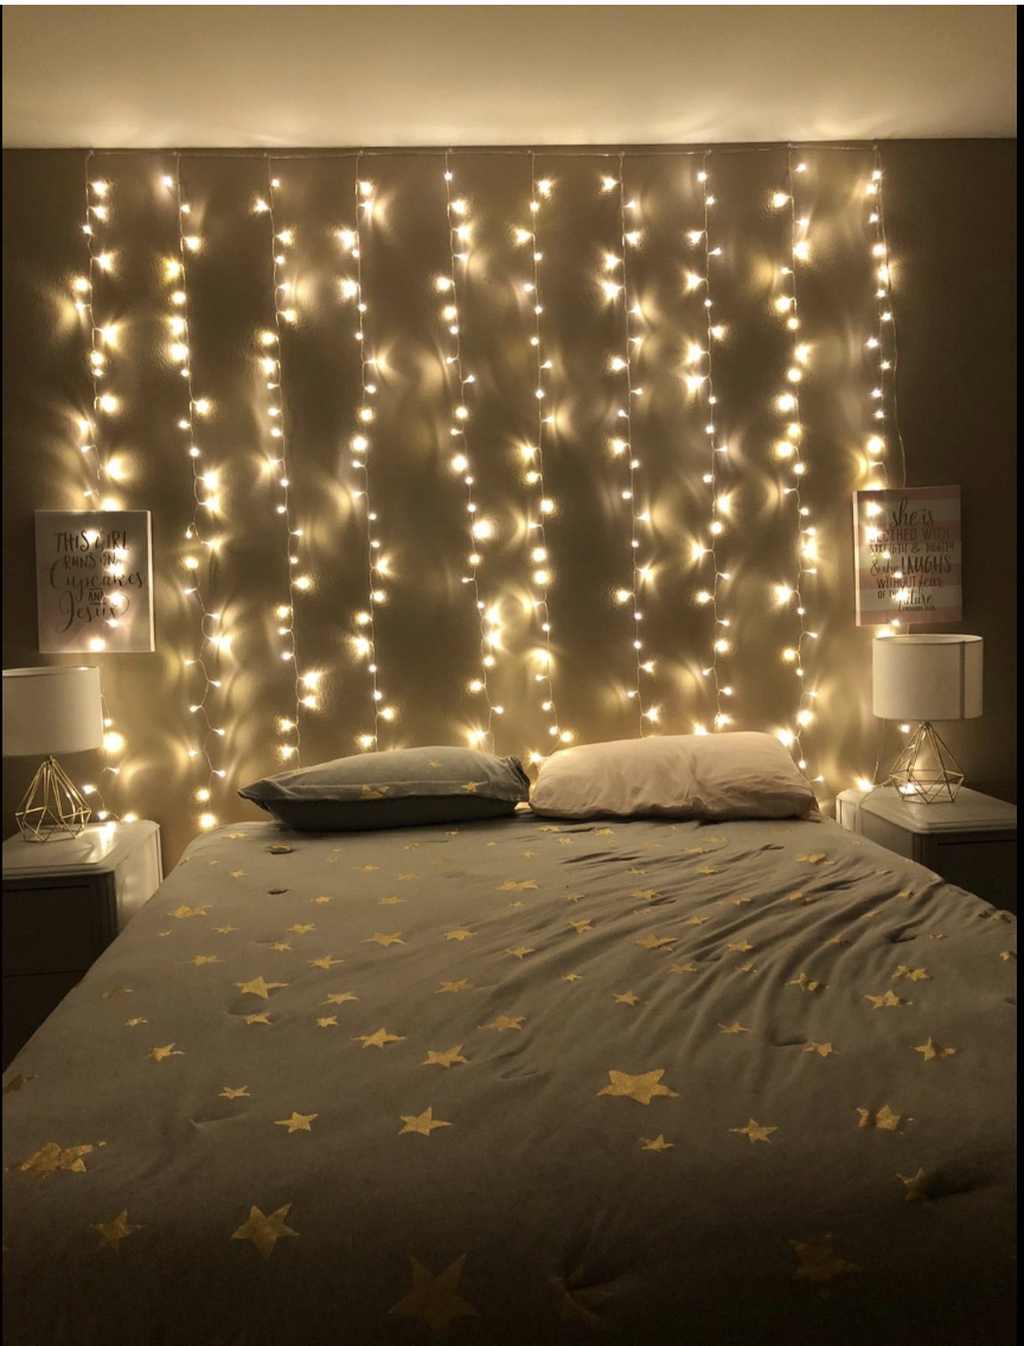 34 Stunning Christmas Lights Decoration Ideas In The Bedroom Fairy Lights Bedroom Aesthetic Rooms Aesthetic Bedroom